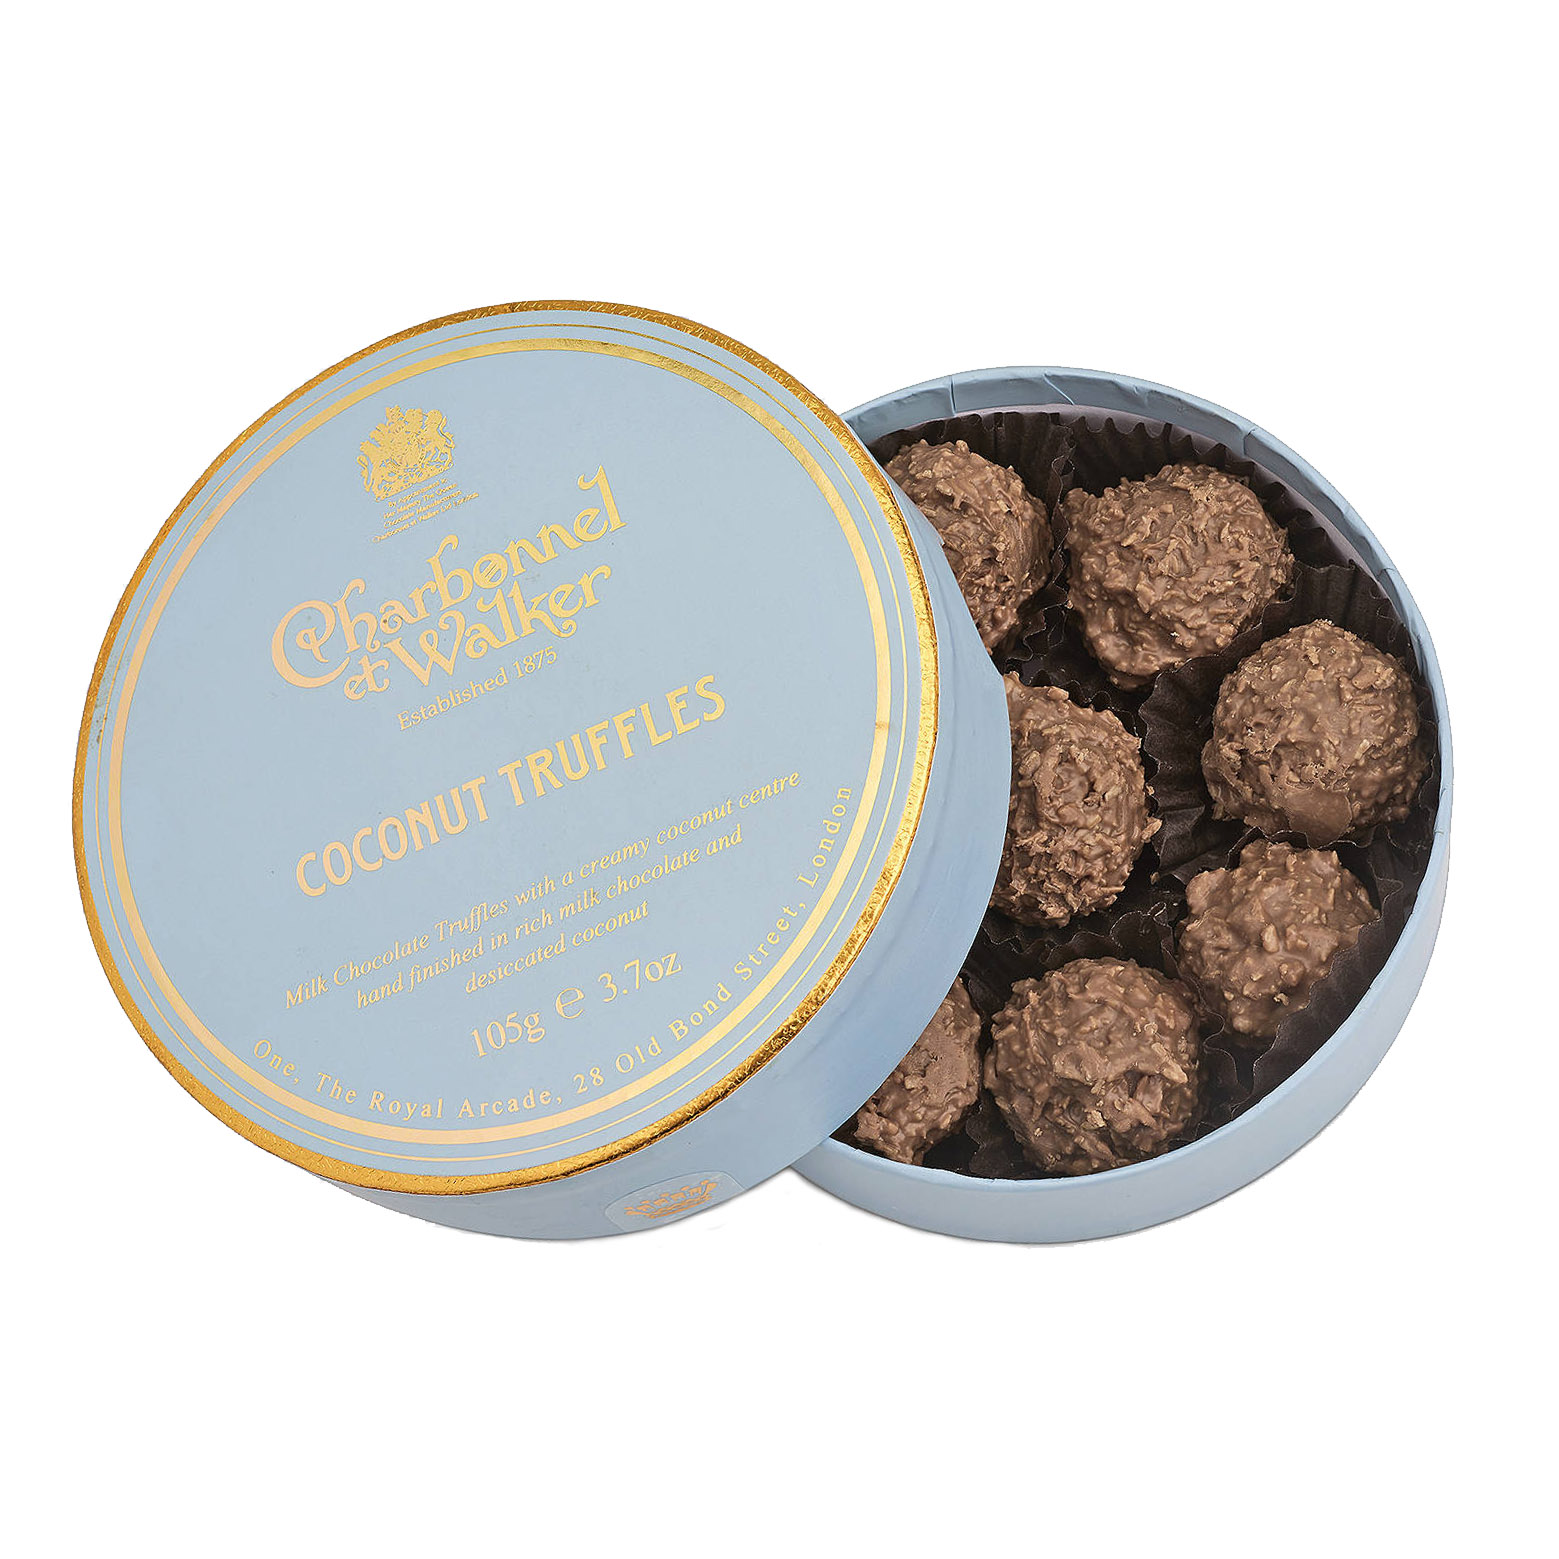 Charbonnel et Walker - Coconut truffles -